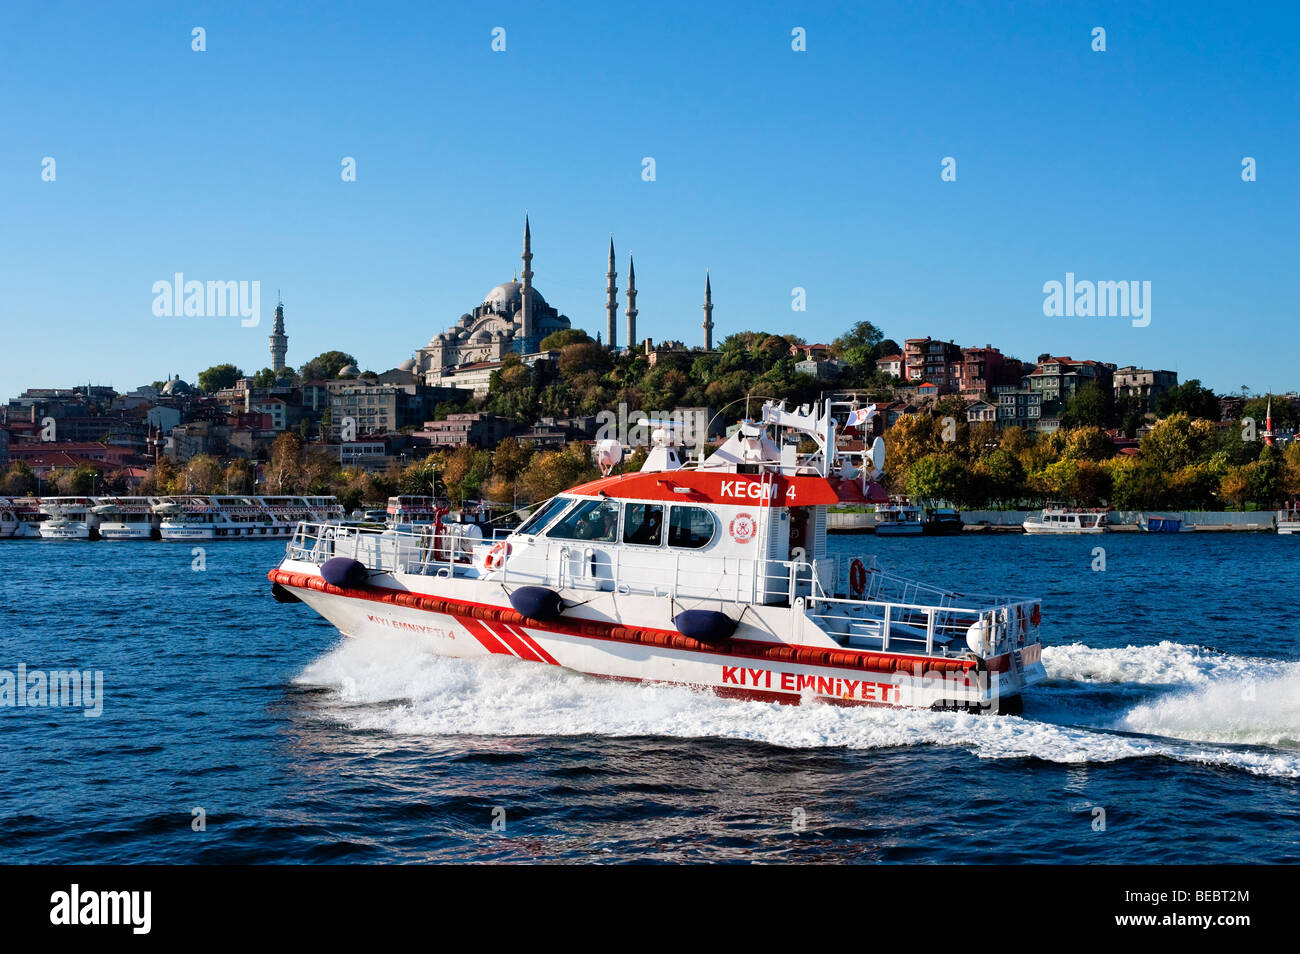 Turkish Directorate of Coastal Safety fast rescue boat on the Golden Horn section of the Bosphorus - Stock Image